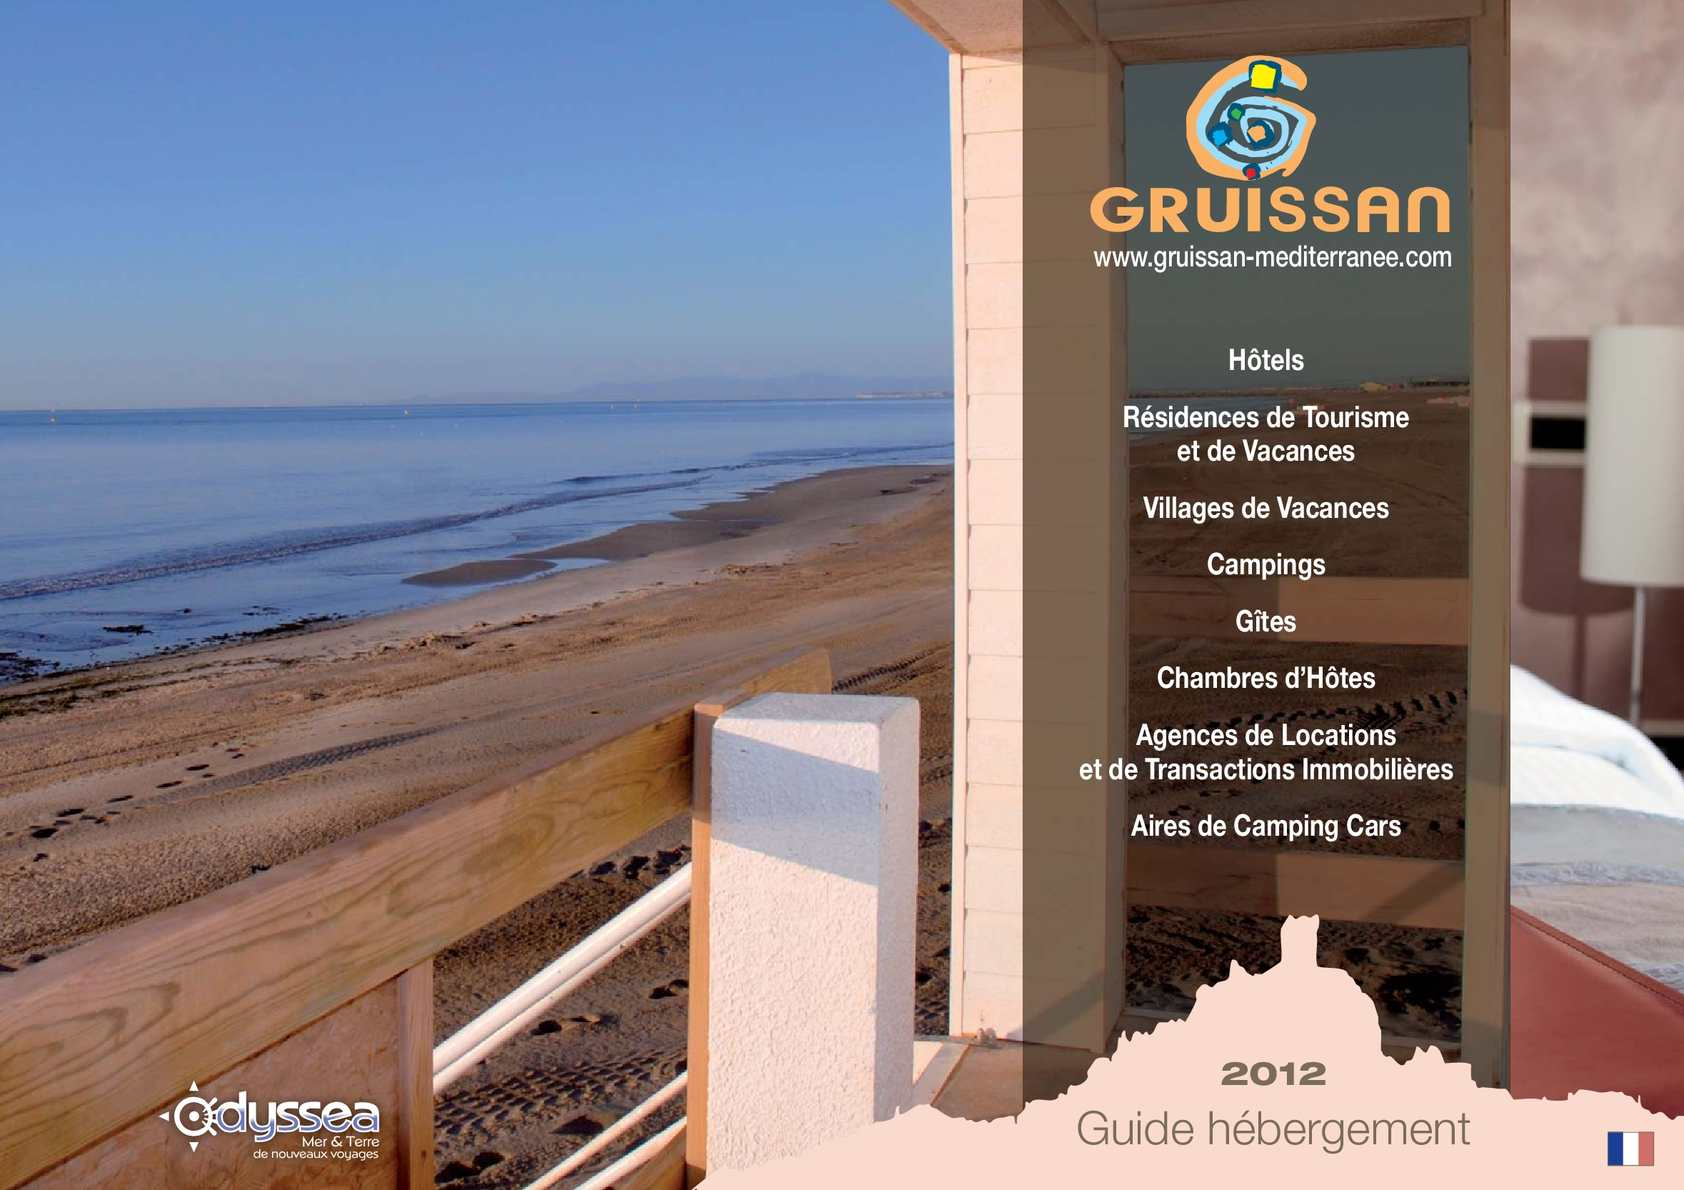 Calam o gruissan h bergement for Gruissan chambre hote